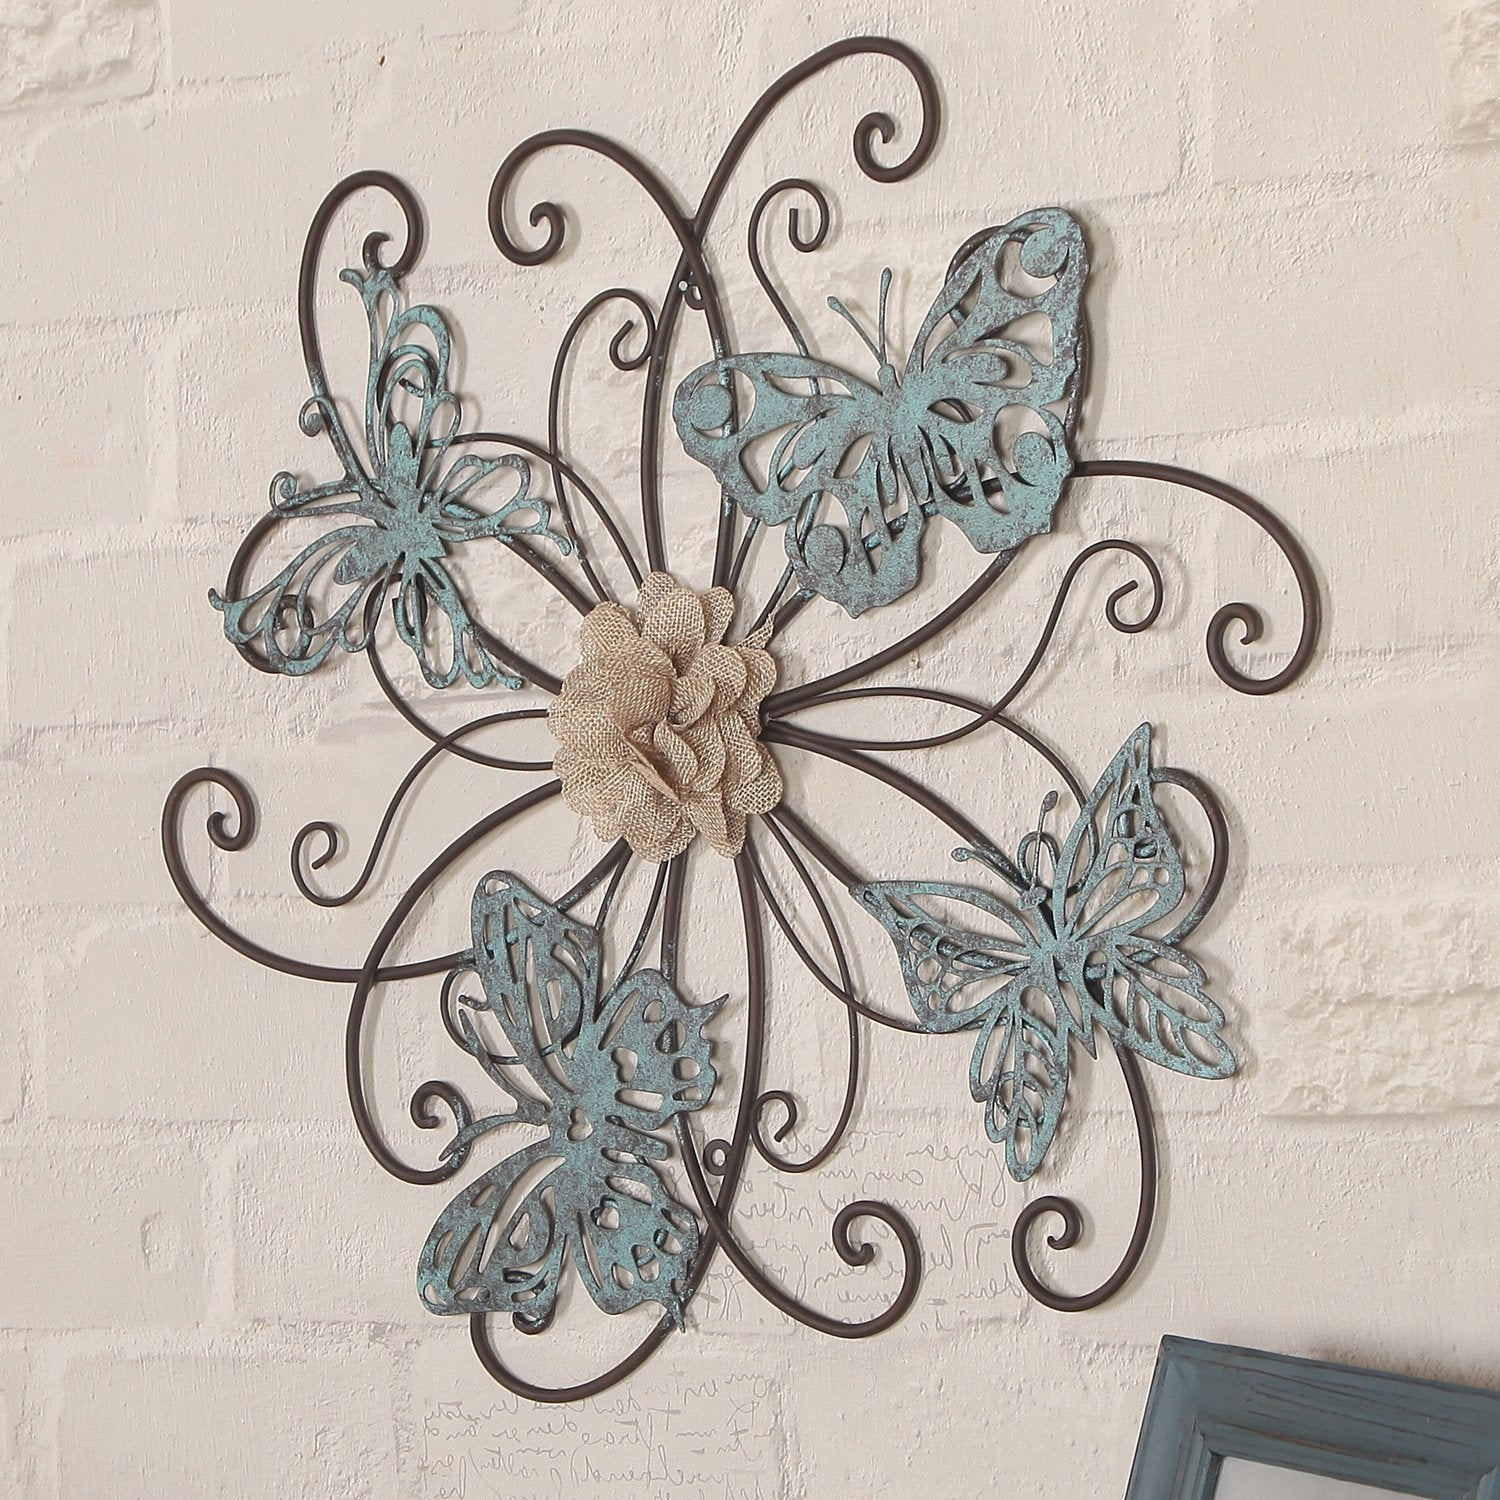 Shop Adeco Flower And Butterfly Urban Design Metal Wall Decor For With Widely Used Flower Urban Design Metal Wall Decor (Gallery 8 of 20)